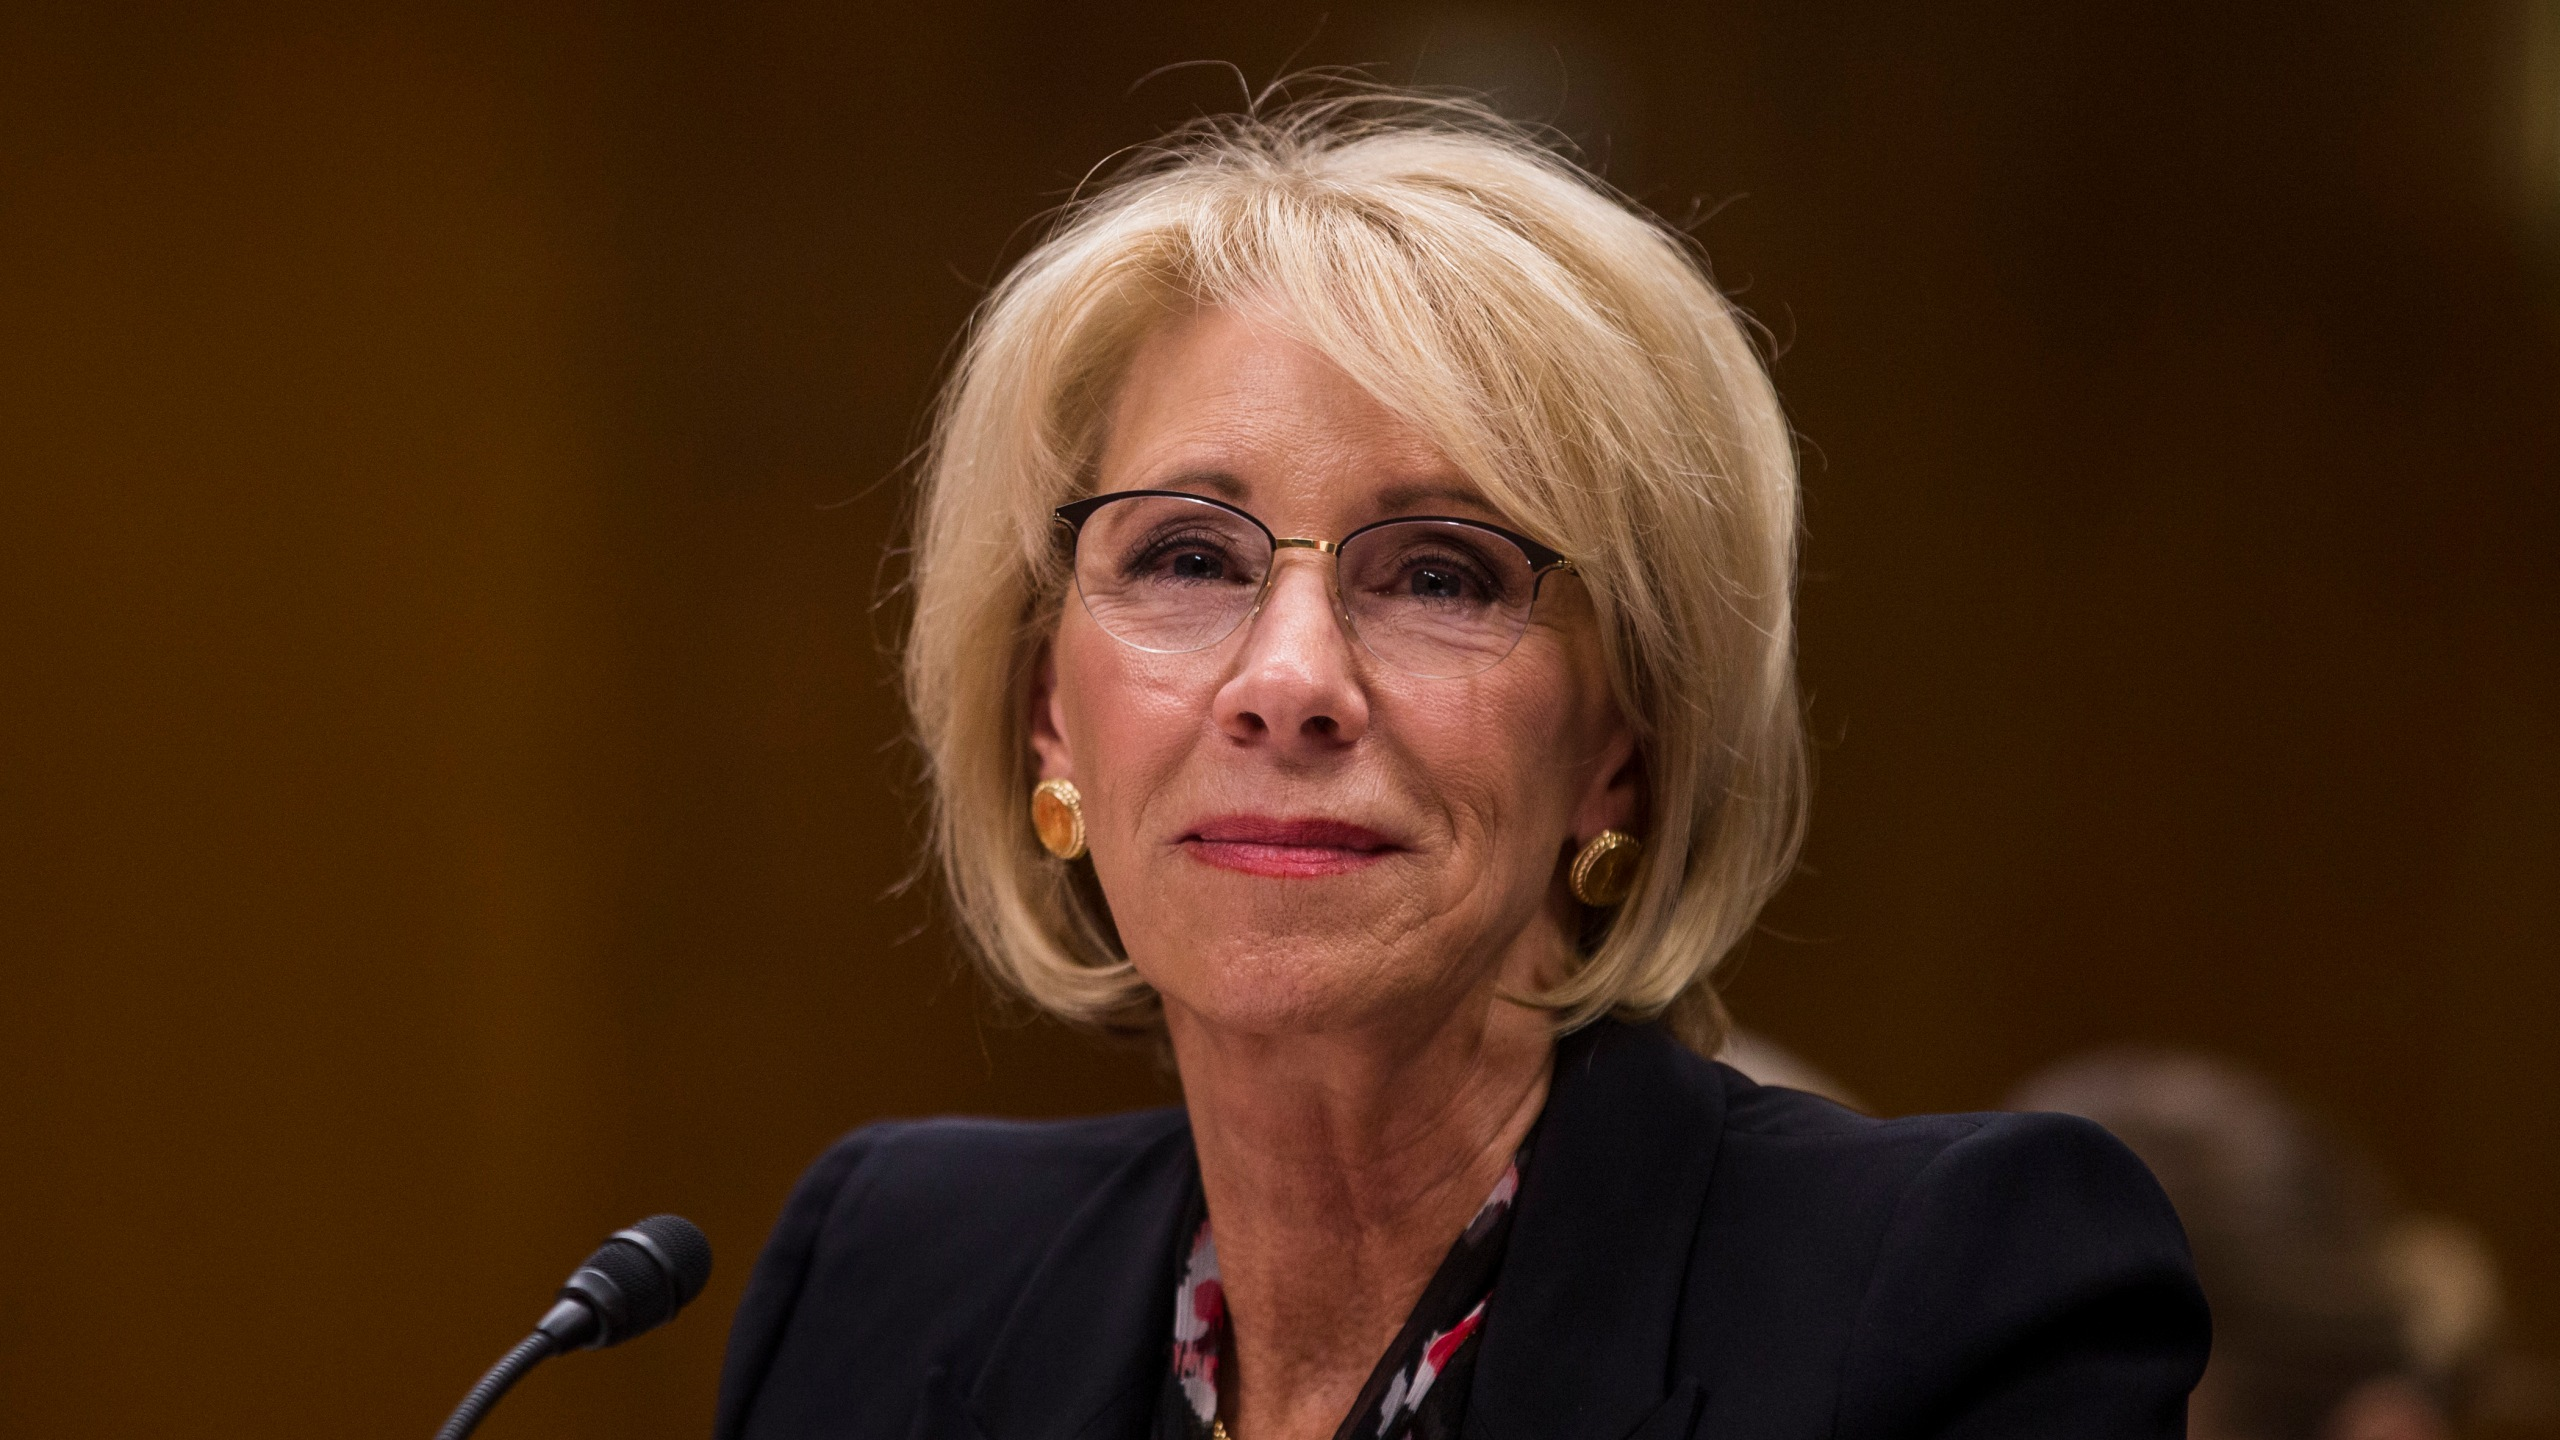 Secretary of Education Betsy DeVos testifies during a Senate subcommittee meeting discussing her department's proposed budget estimates and justification for fiscal year 2020 on March 28, 2019. (Credit: Zach Gibson / Getty Images)